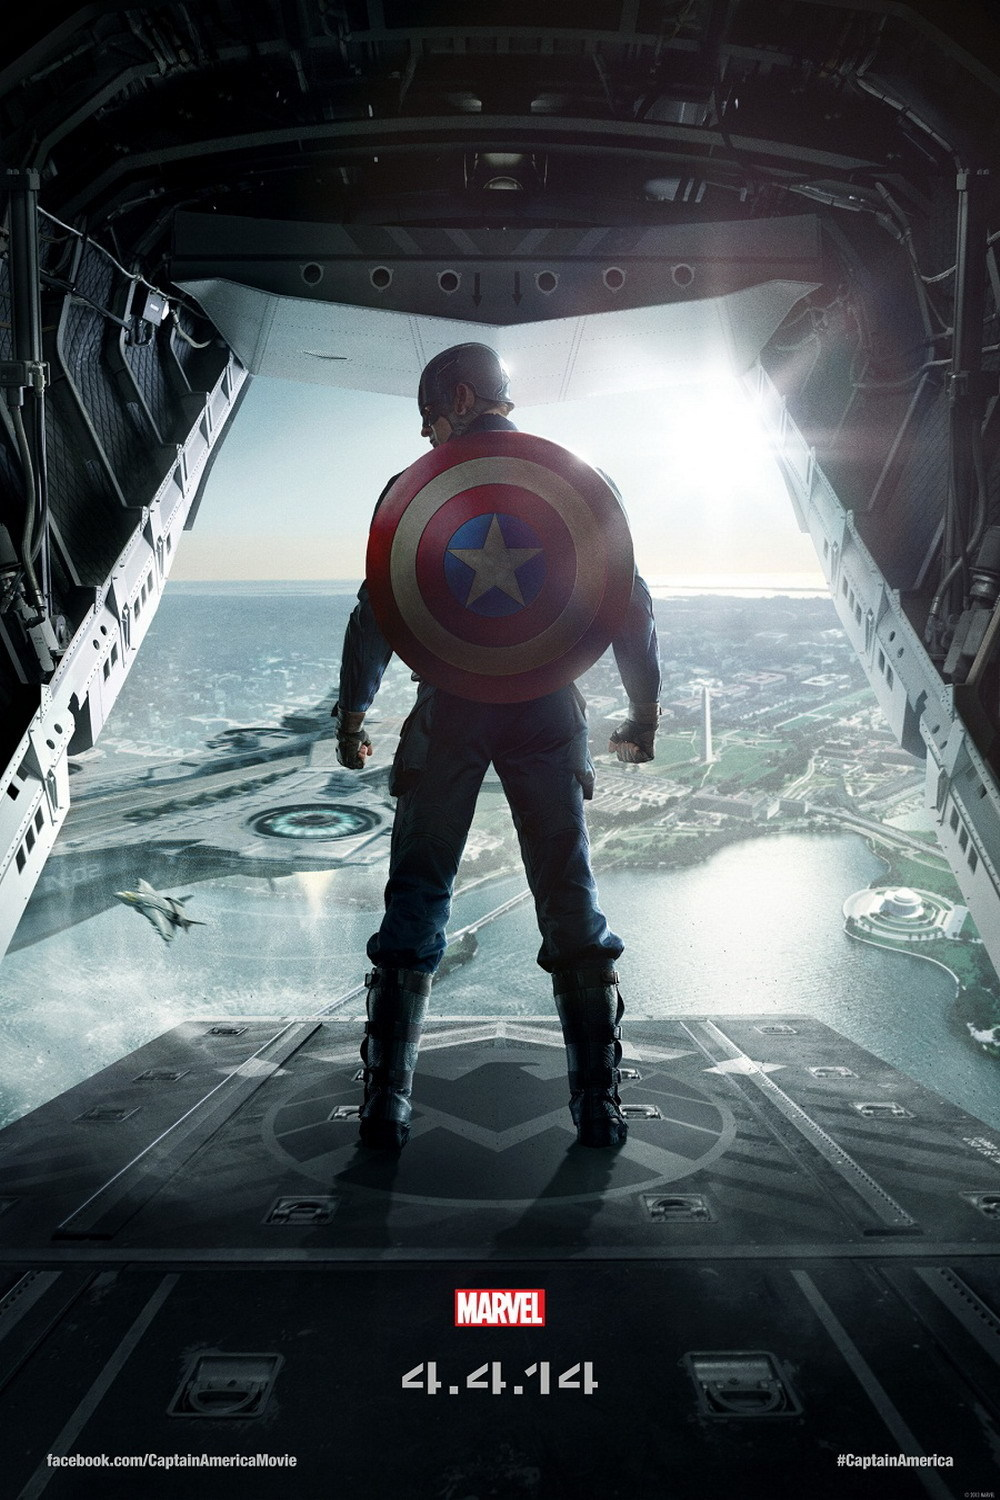 Captain america release date in Sydney